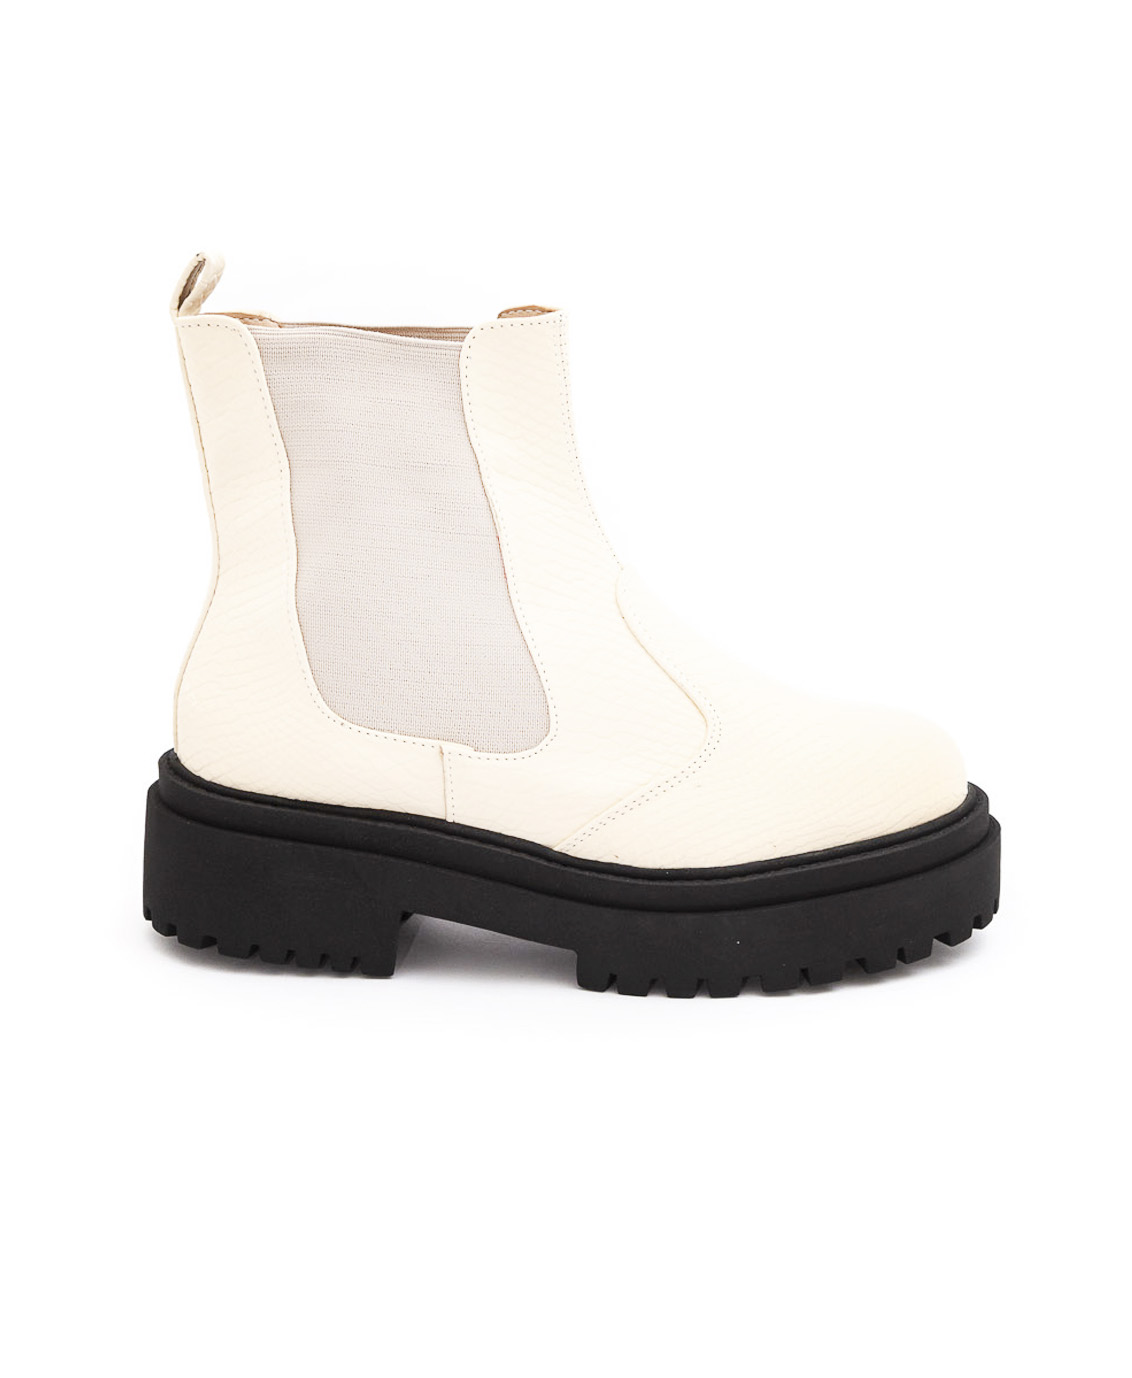 BOTA NOVA YORK OFF WHITE